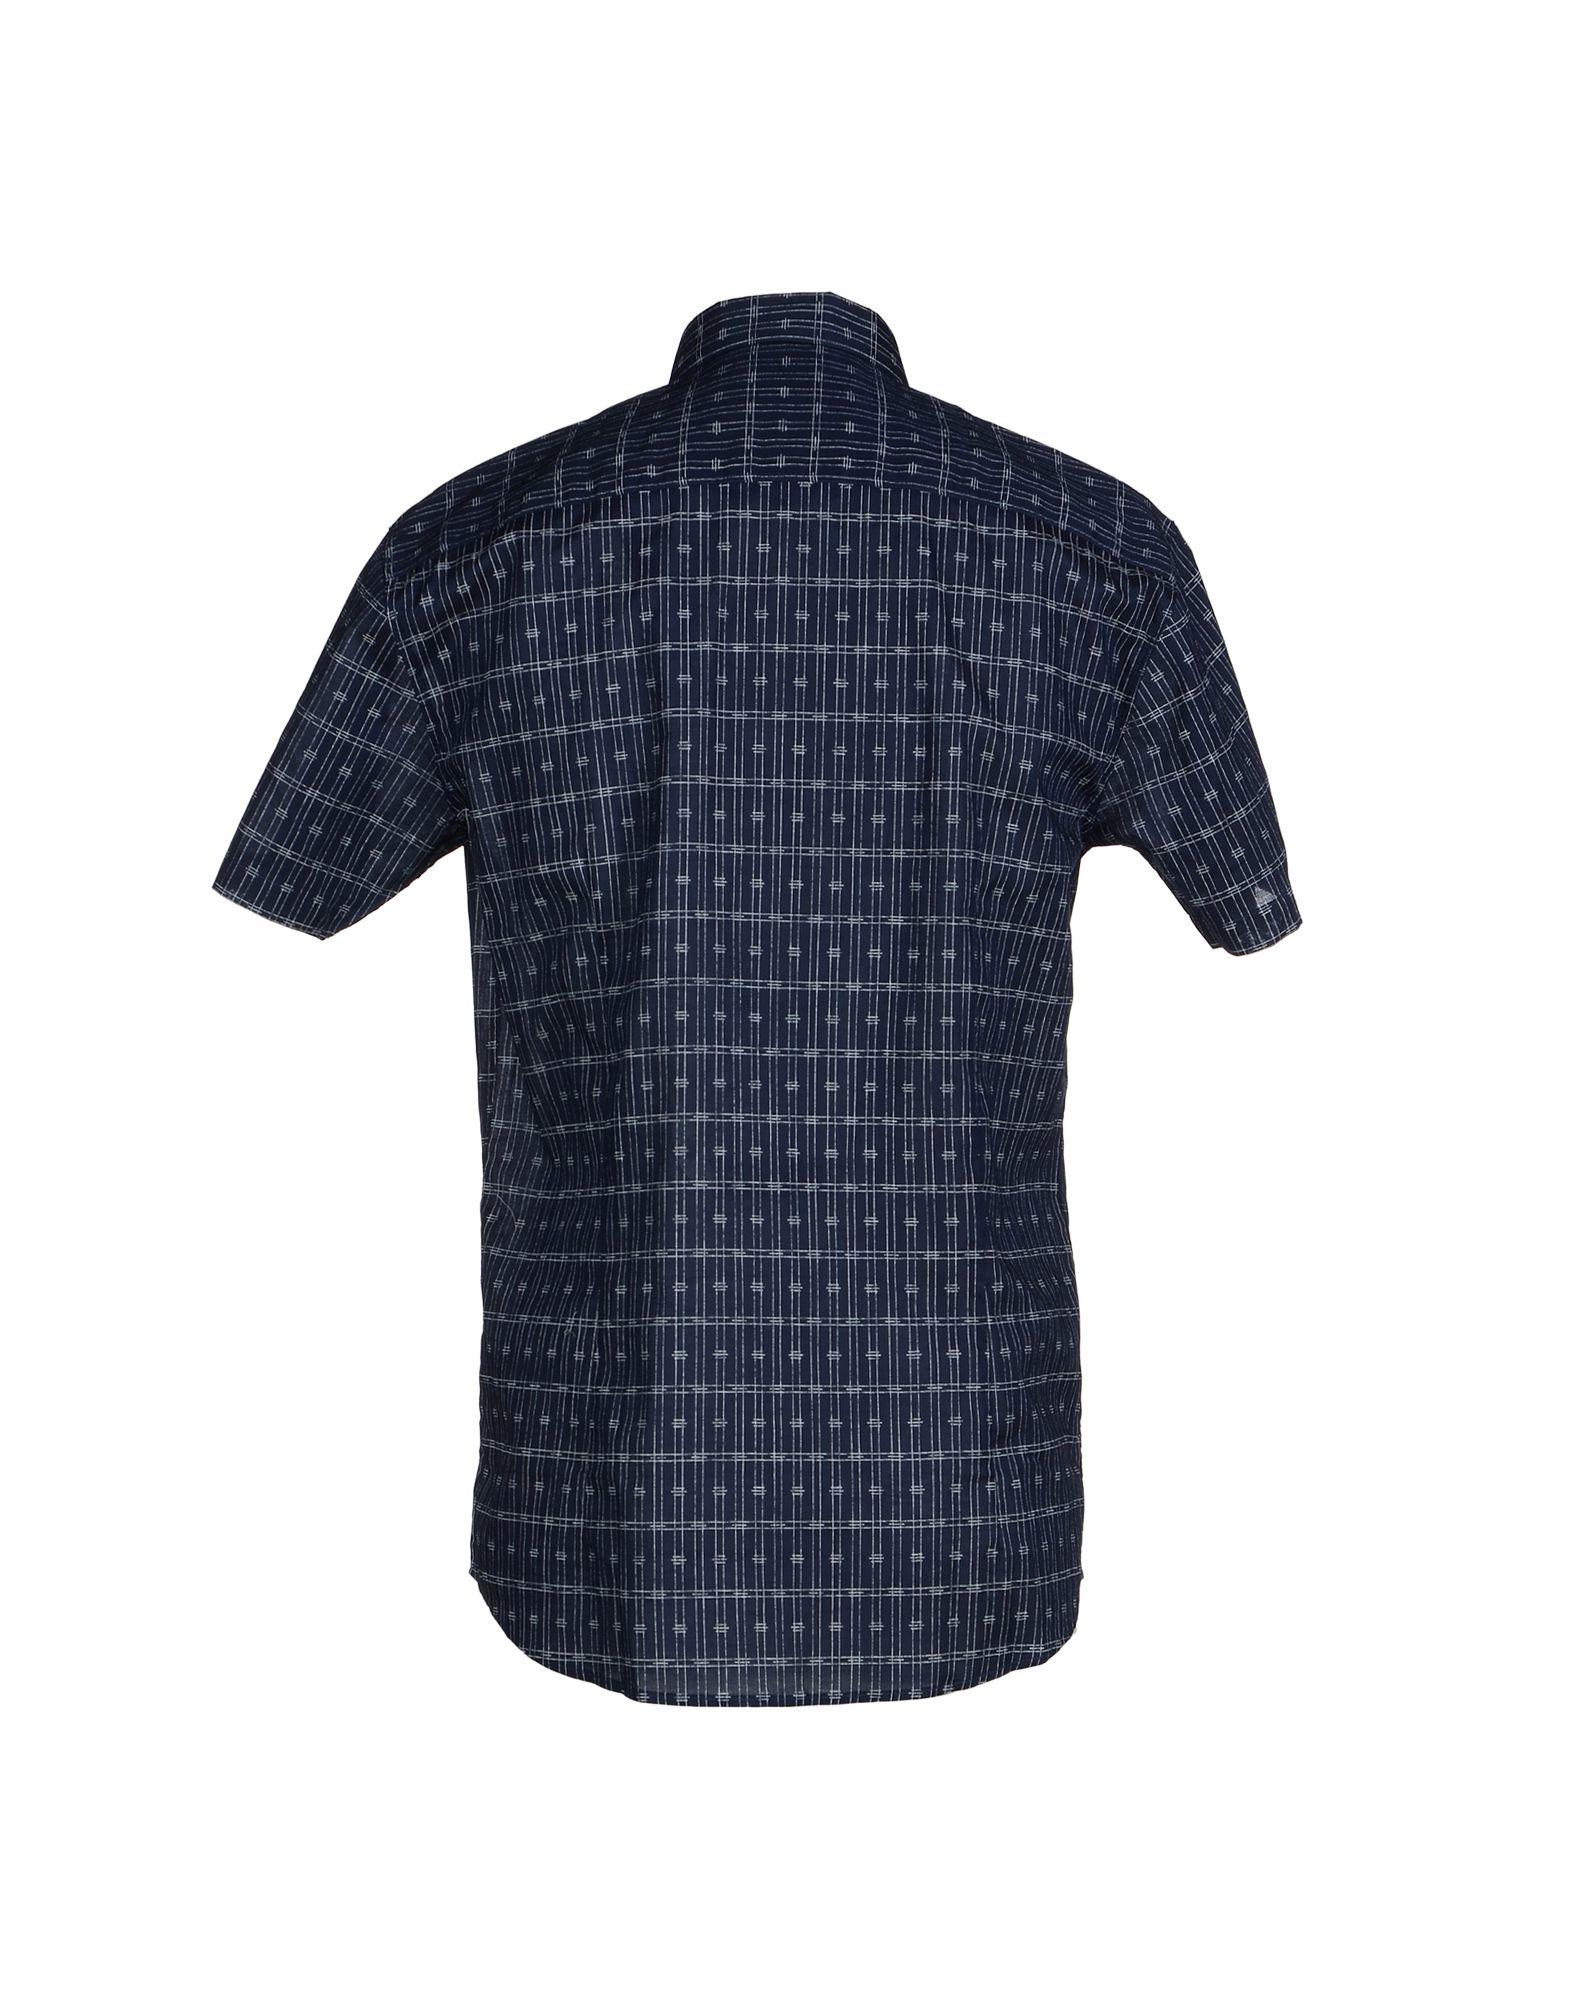 Shop online complete range of Lacoste clothes and accessories for men, women and kids. Buy Lacoste shoes, polos, leather goods and more at soroduvujugu.gq